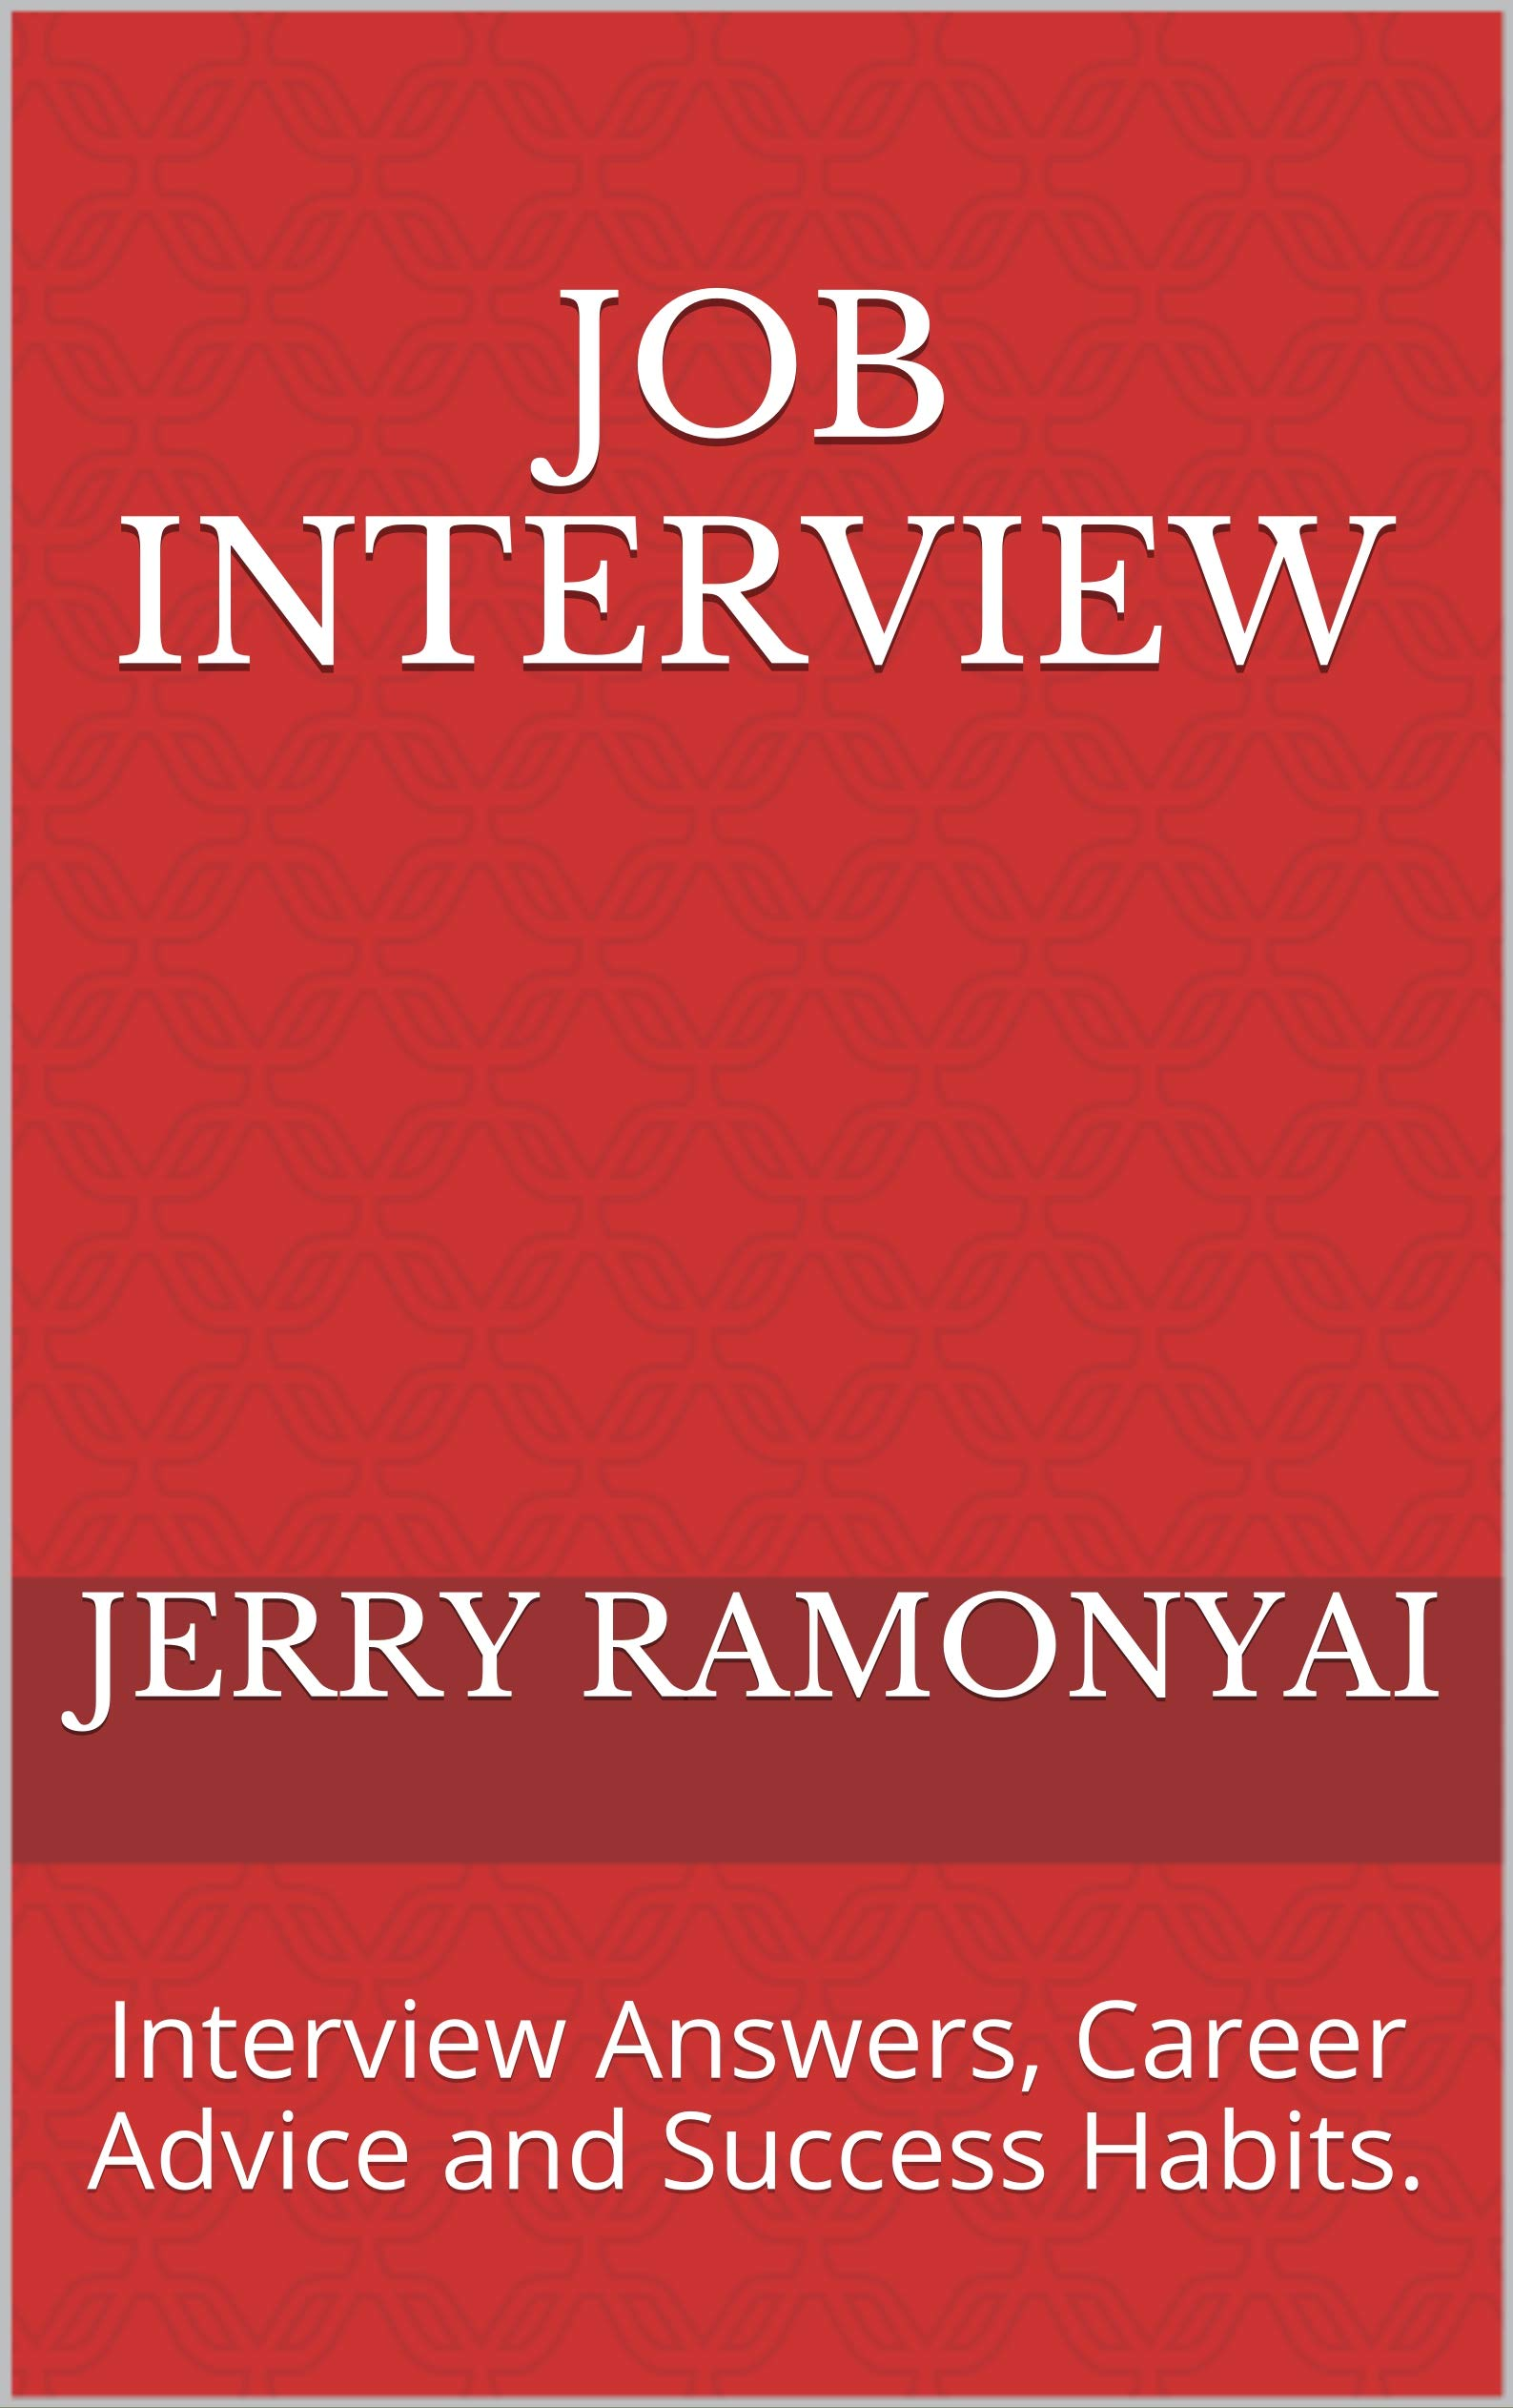 Job Interview: Interview Answers, Career Advice and Success Habits.